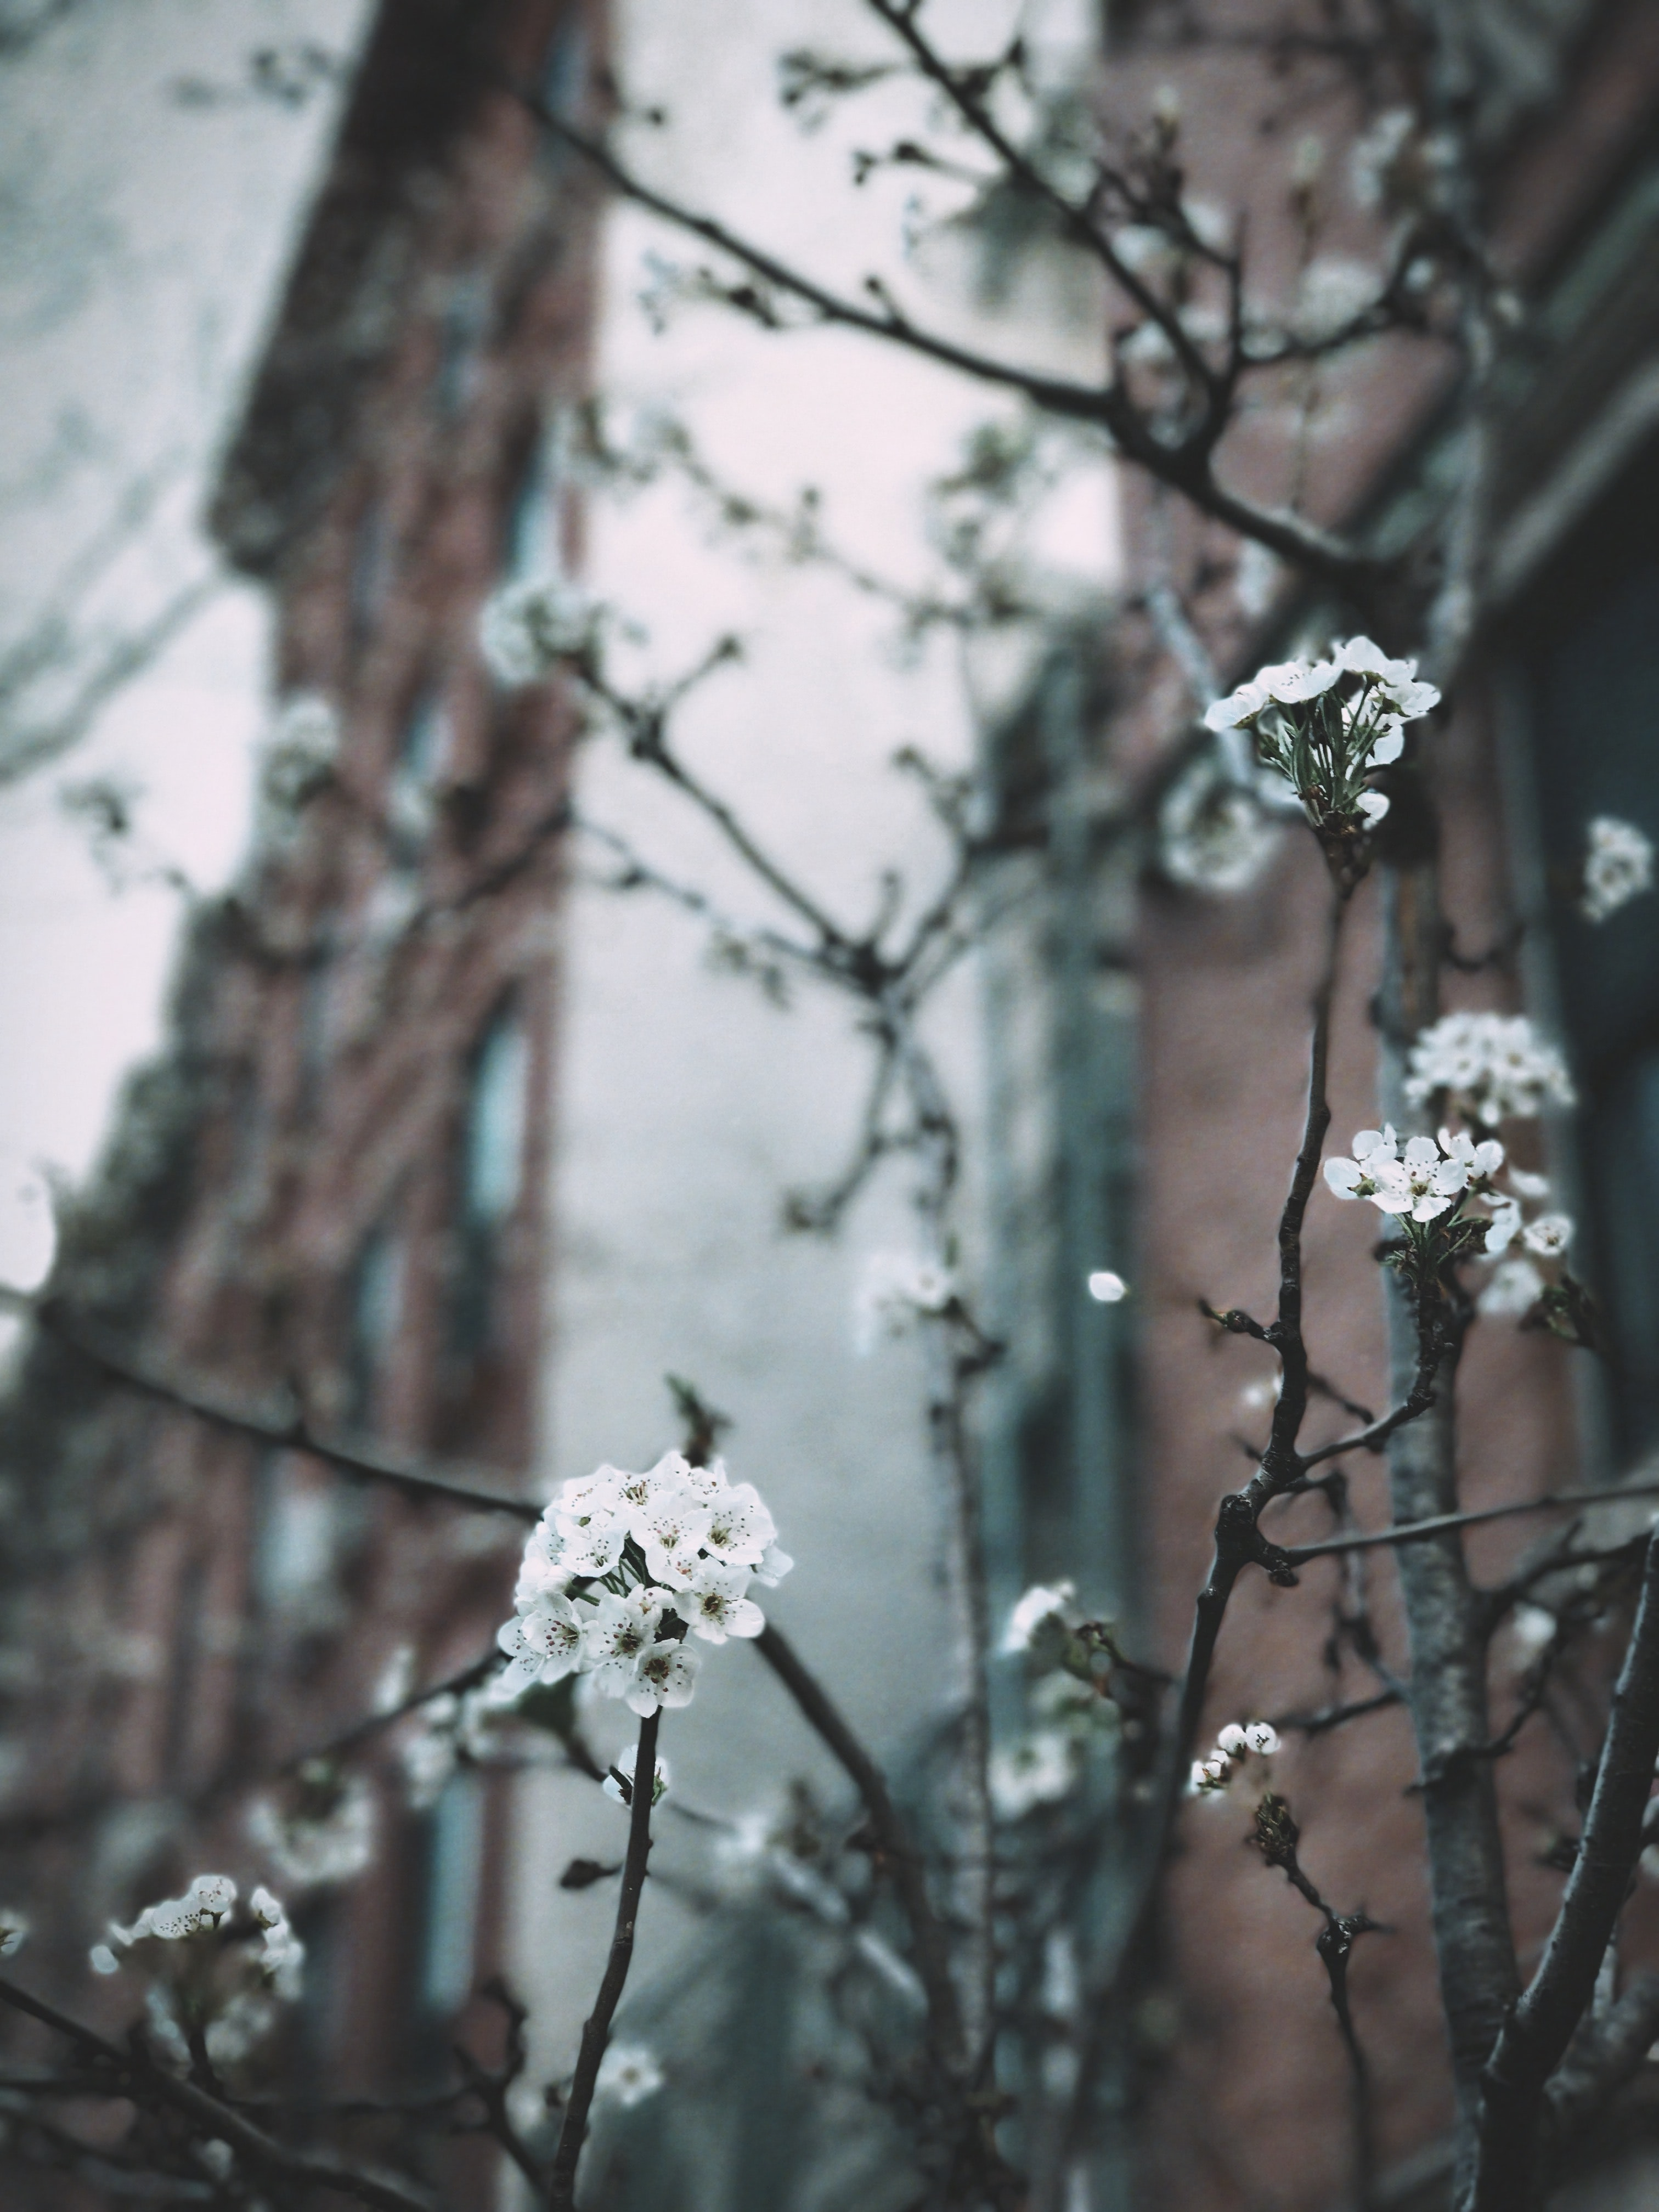 Cherry blossom twig in front of urban redbrick building in Spring